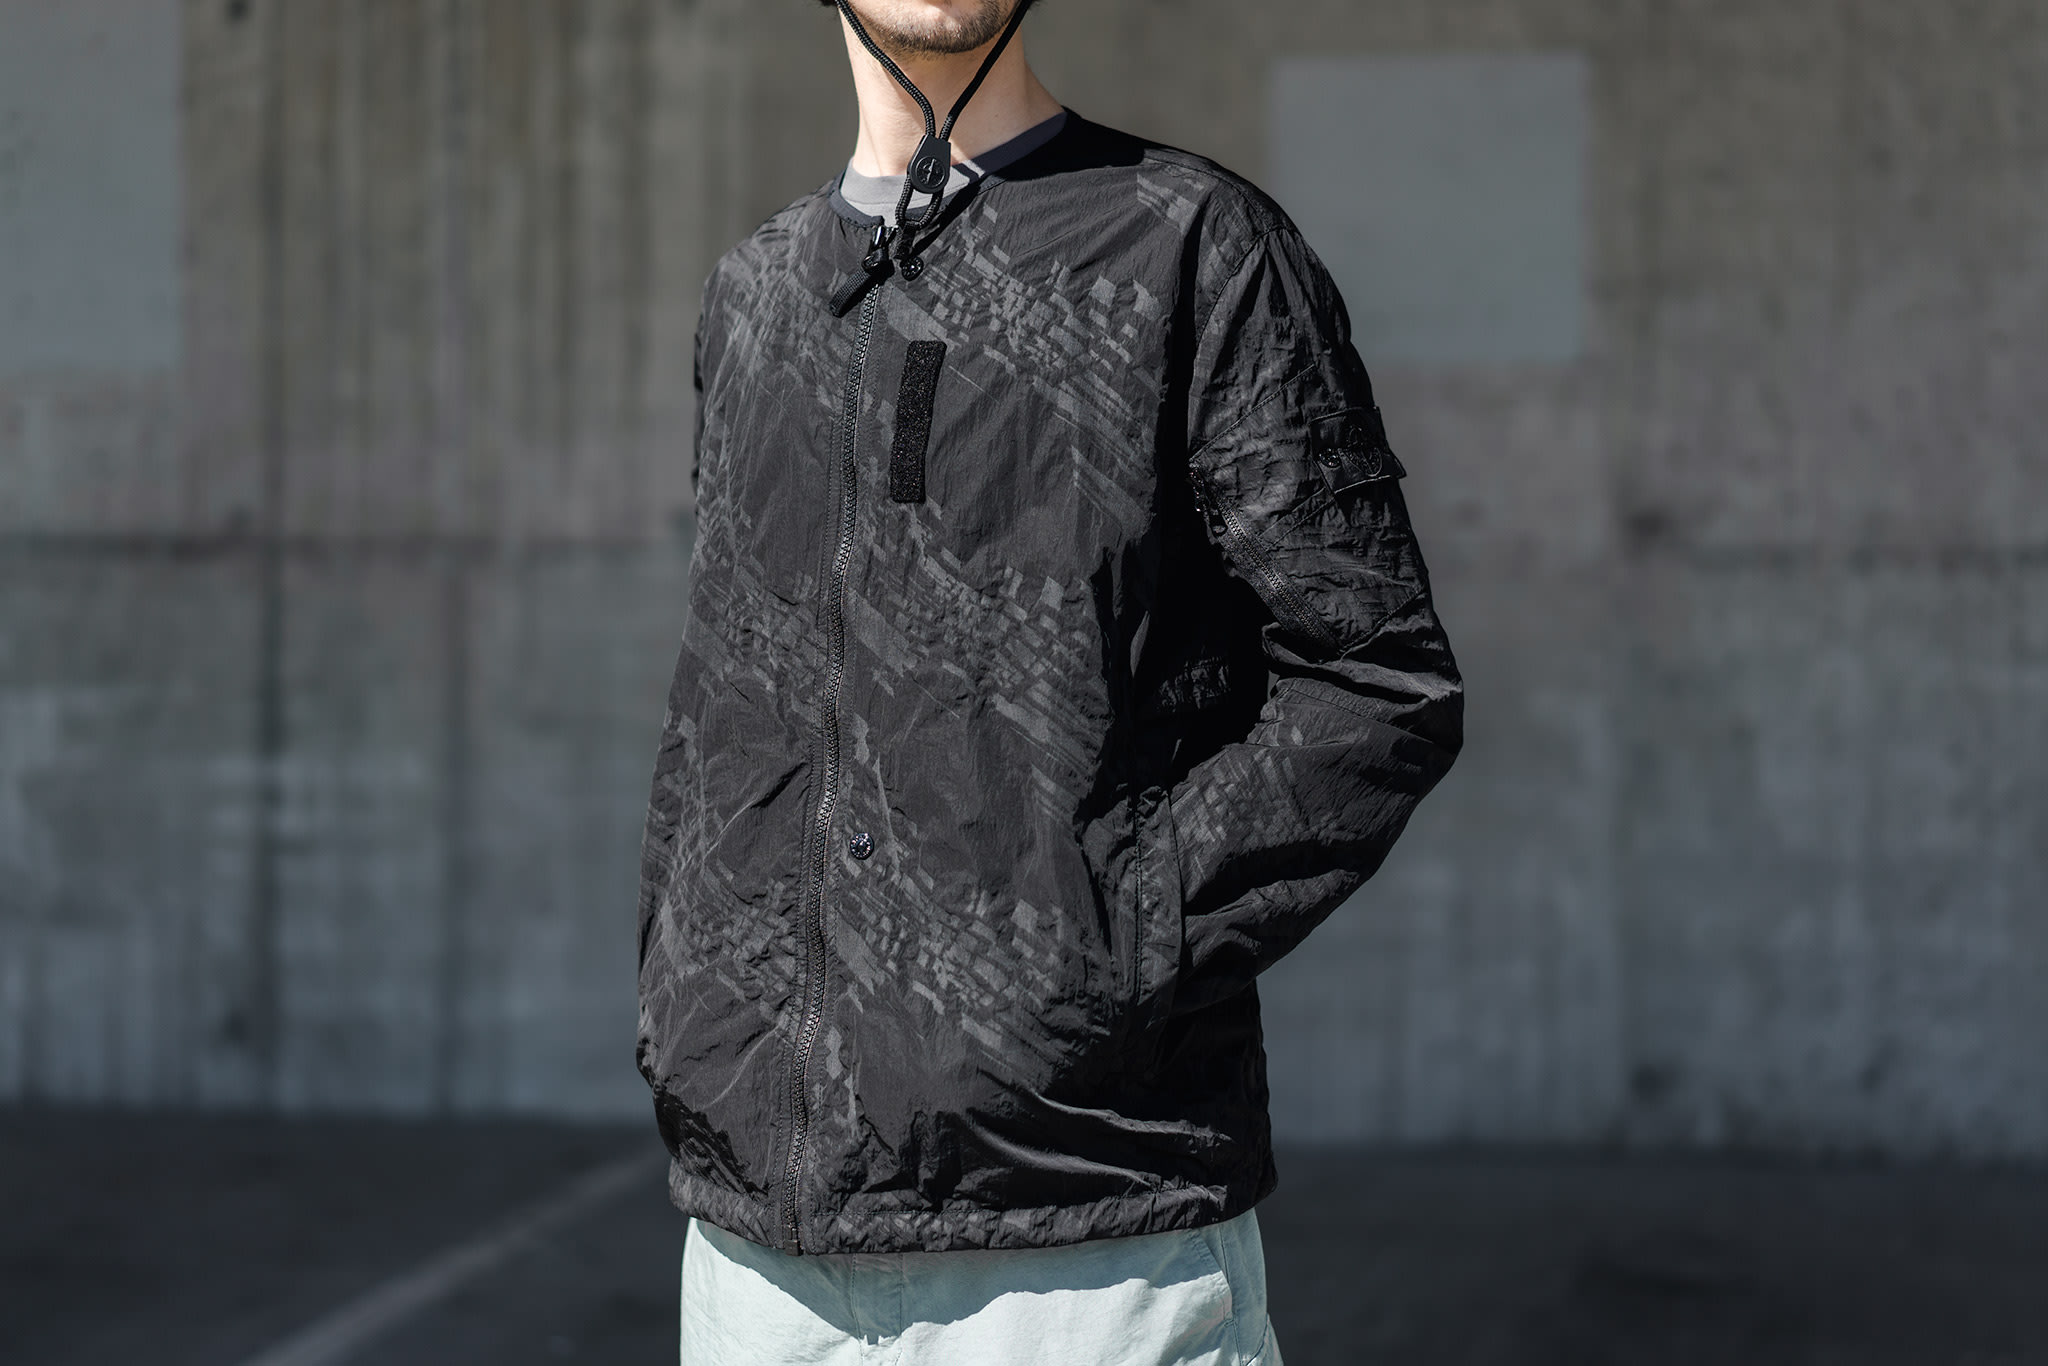 HAVEN-SS19-Lookbook-SISP-Stone-Island-Nike-1